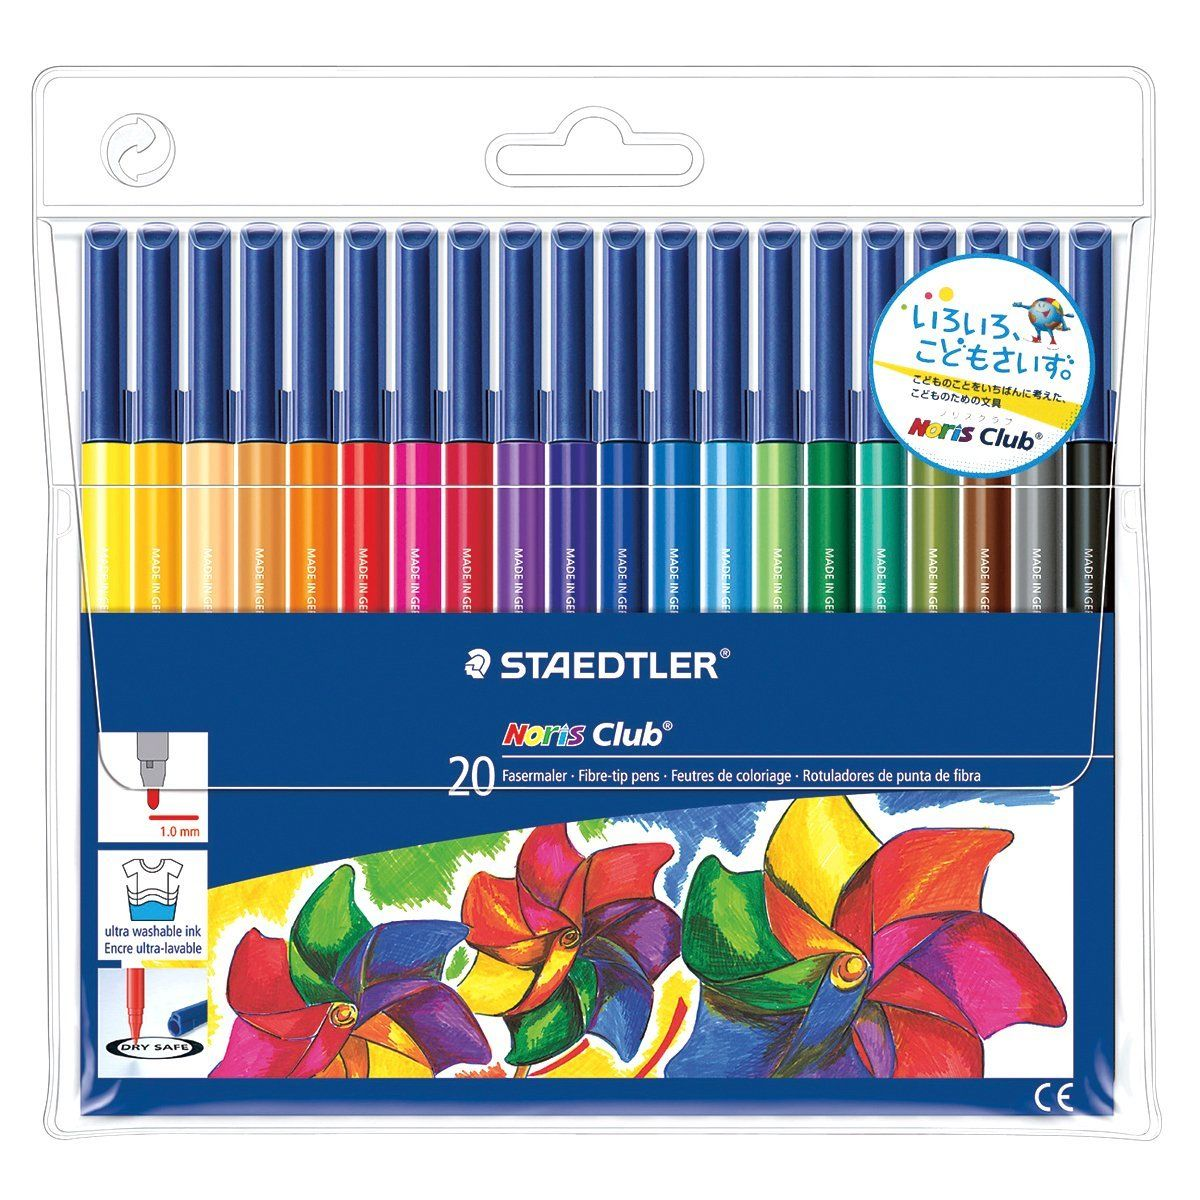 Buy Staedtler Noris Club 326 Wp20 Fibre Tip Pen In Wallet 20 Triplus Color Sb Assorted Colours At Amazon Uk Free Delivery On Eligible Orders